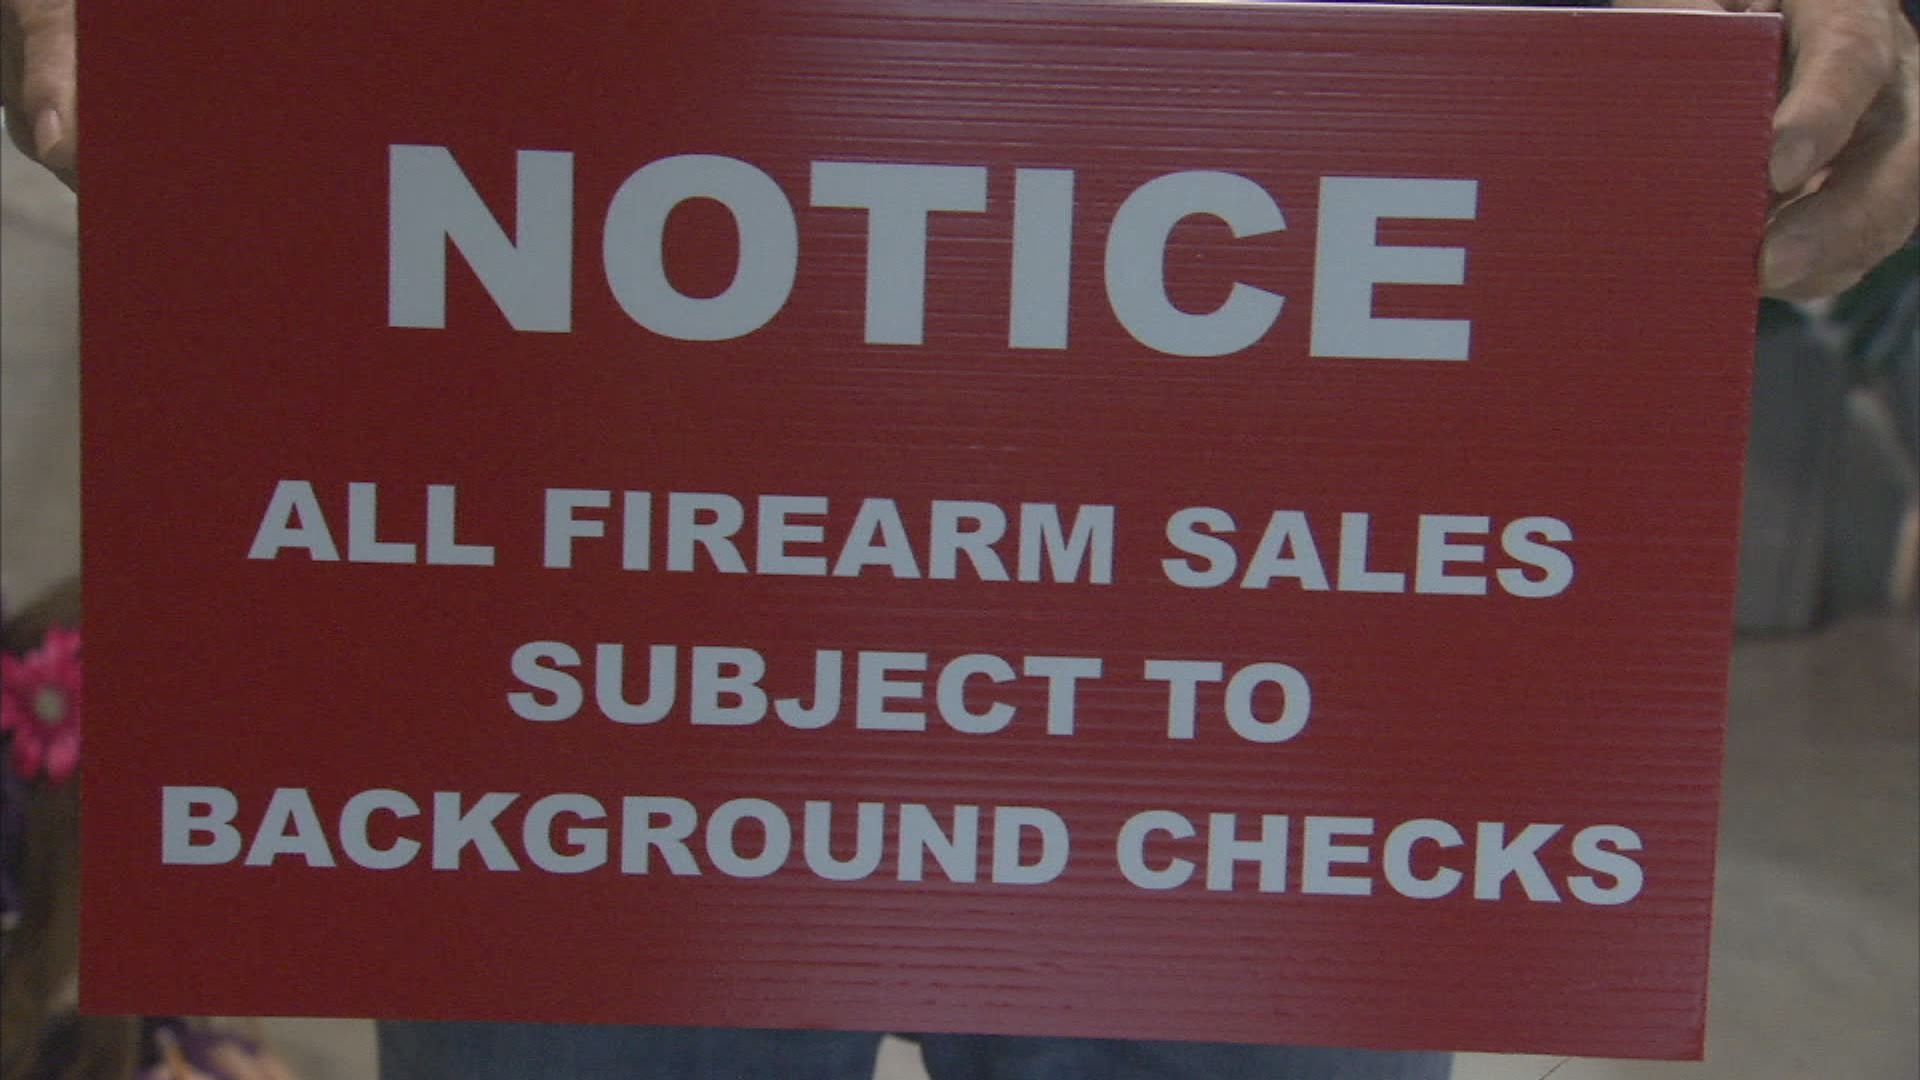 Background check for firearms